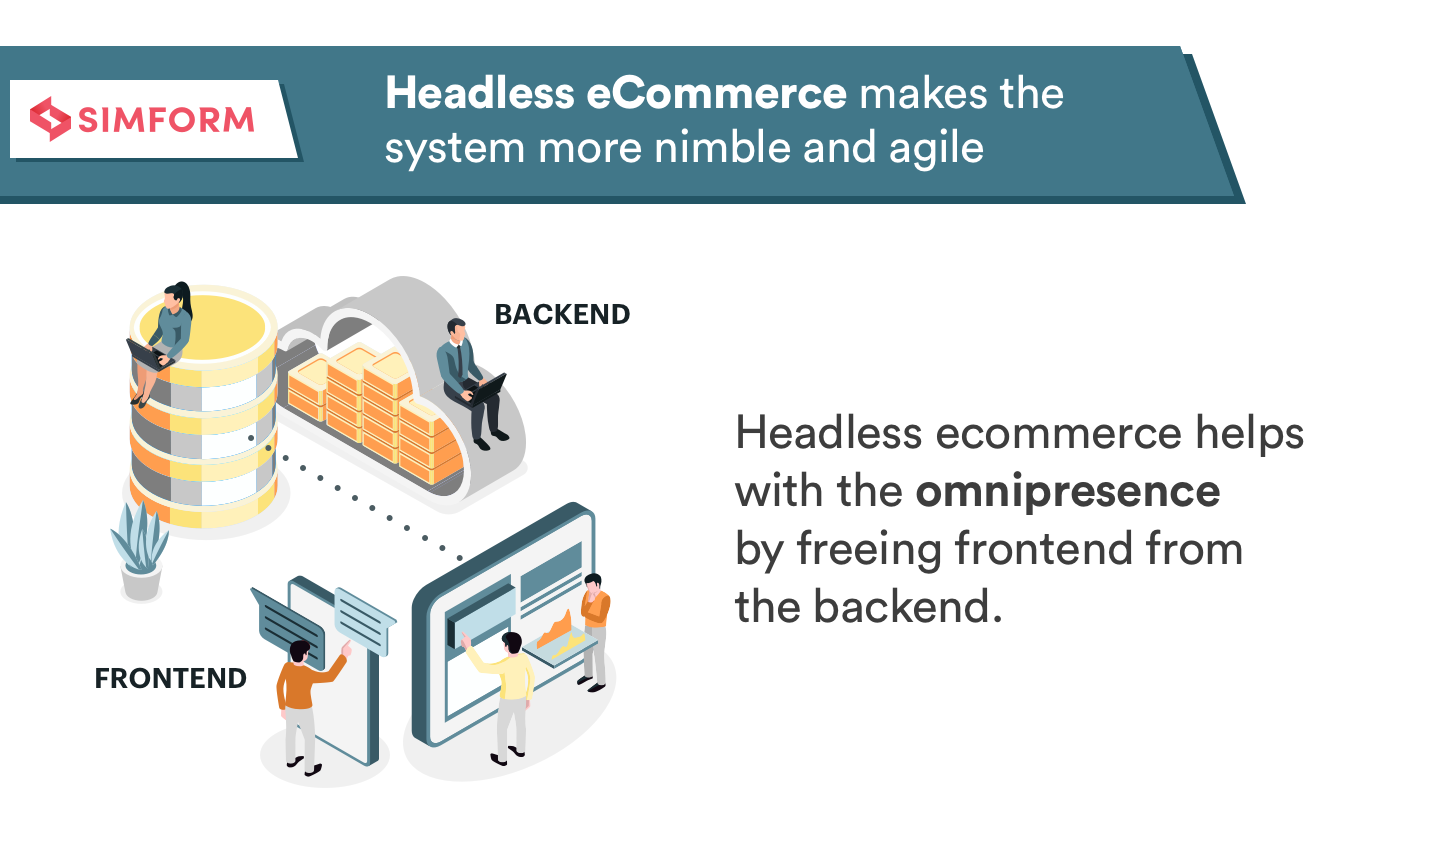 Headless eCommerce makes the system more nimble and agile